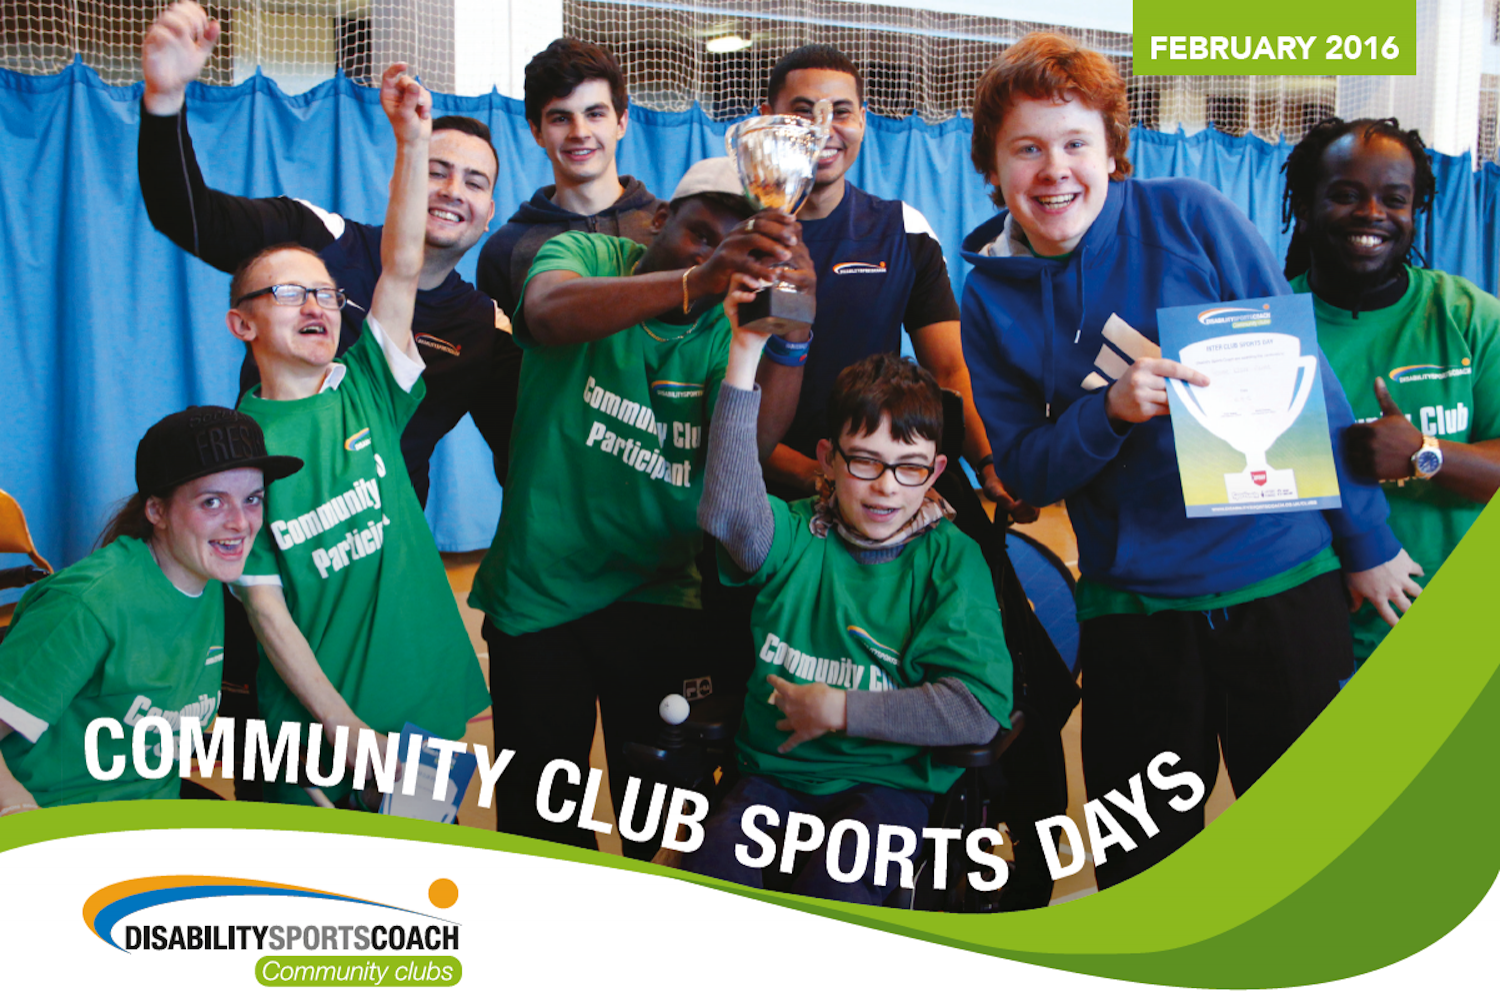 DSC Community Club Sports Days